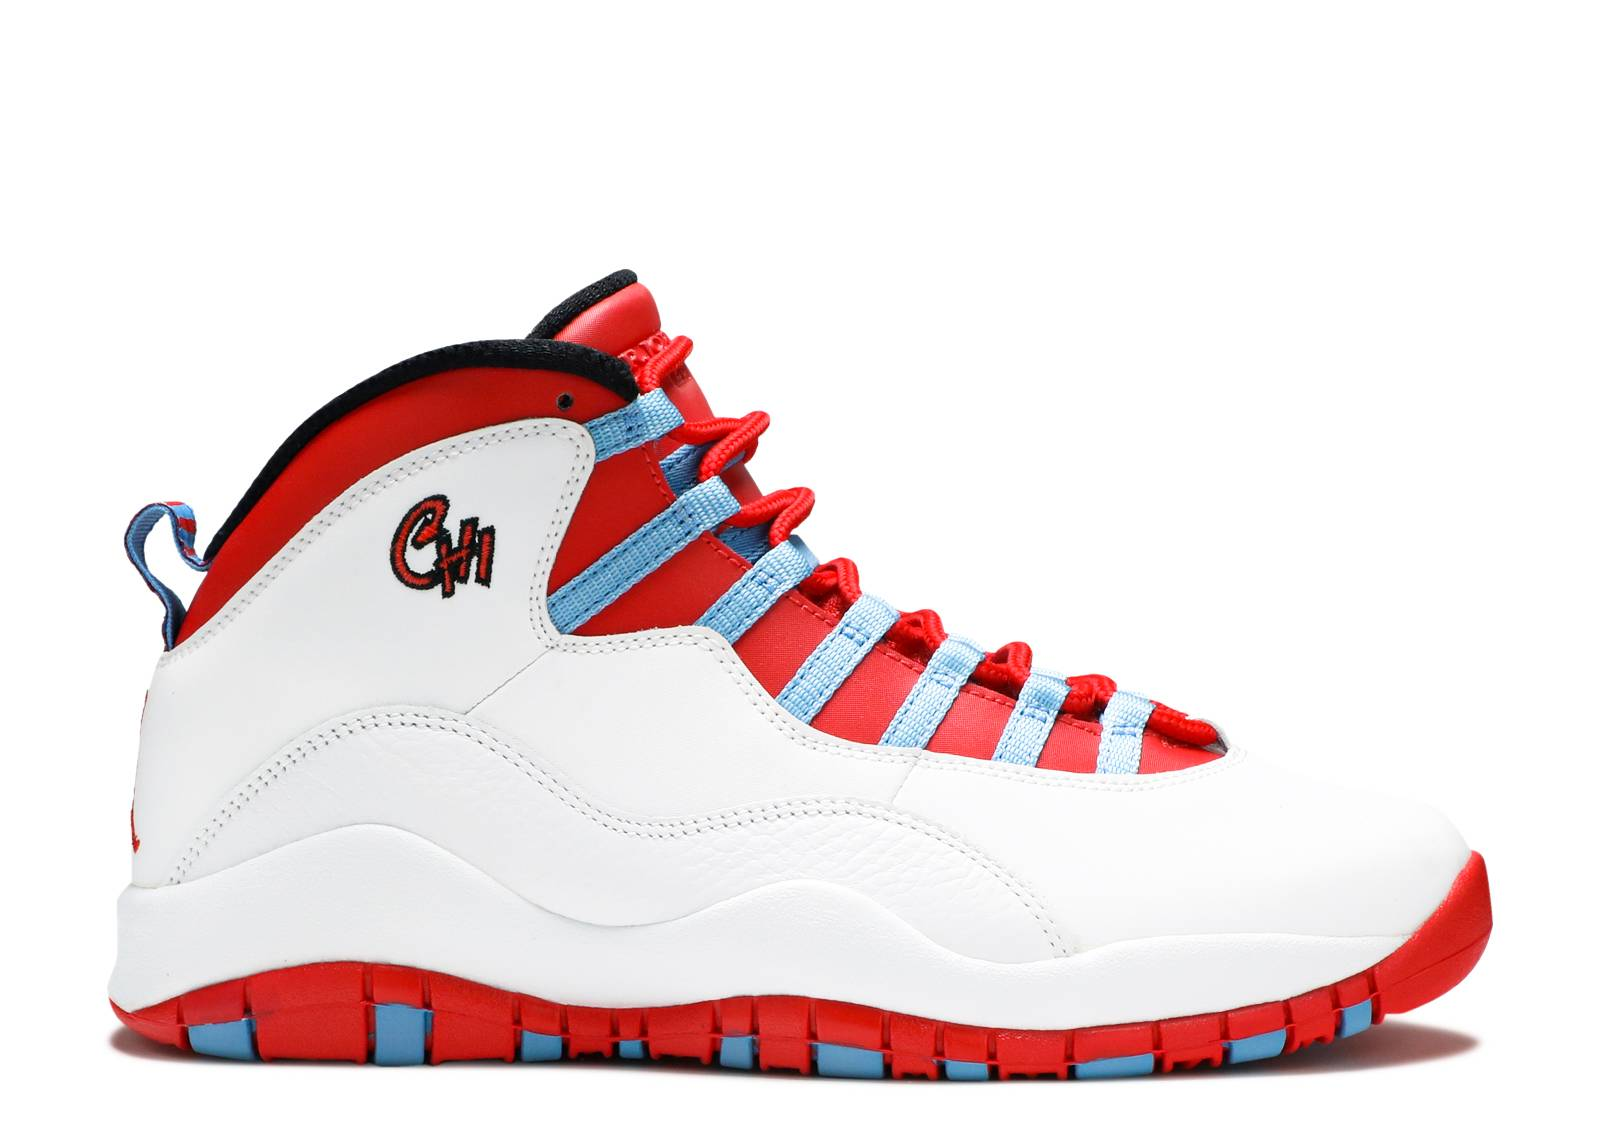 Authentic Air Jordan 10 Retro Bg Chicago Shoe For Sale